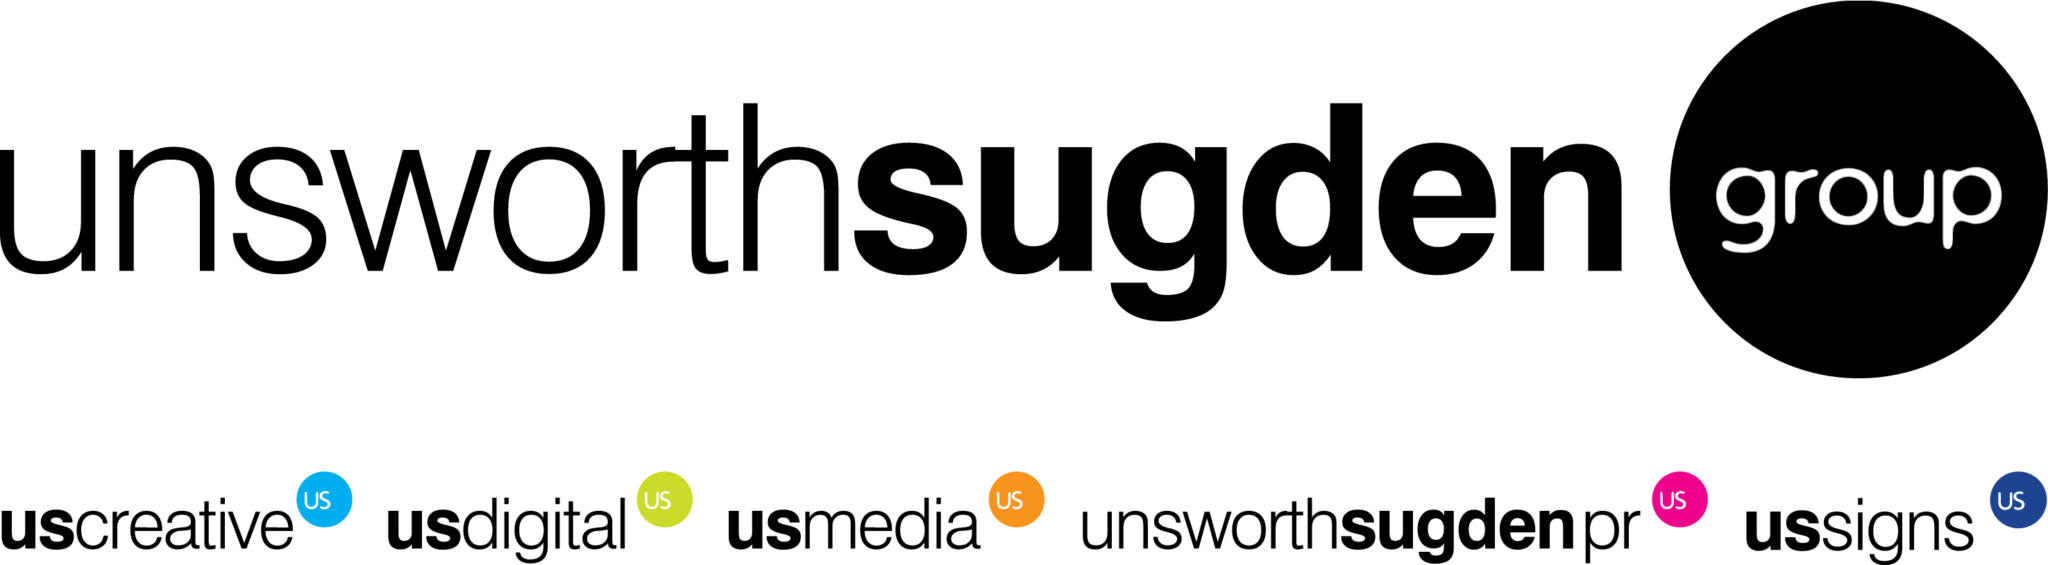 Unsworth Sugden Group logo